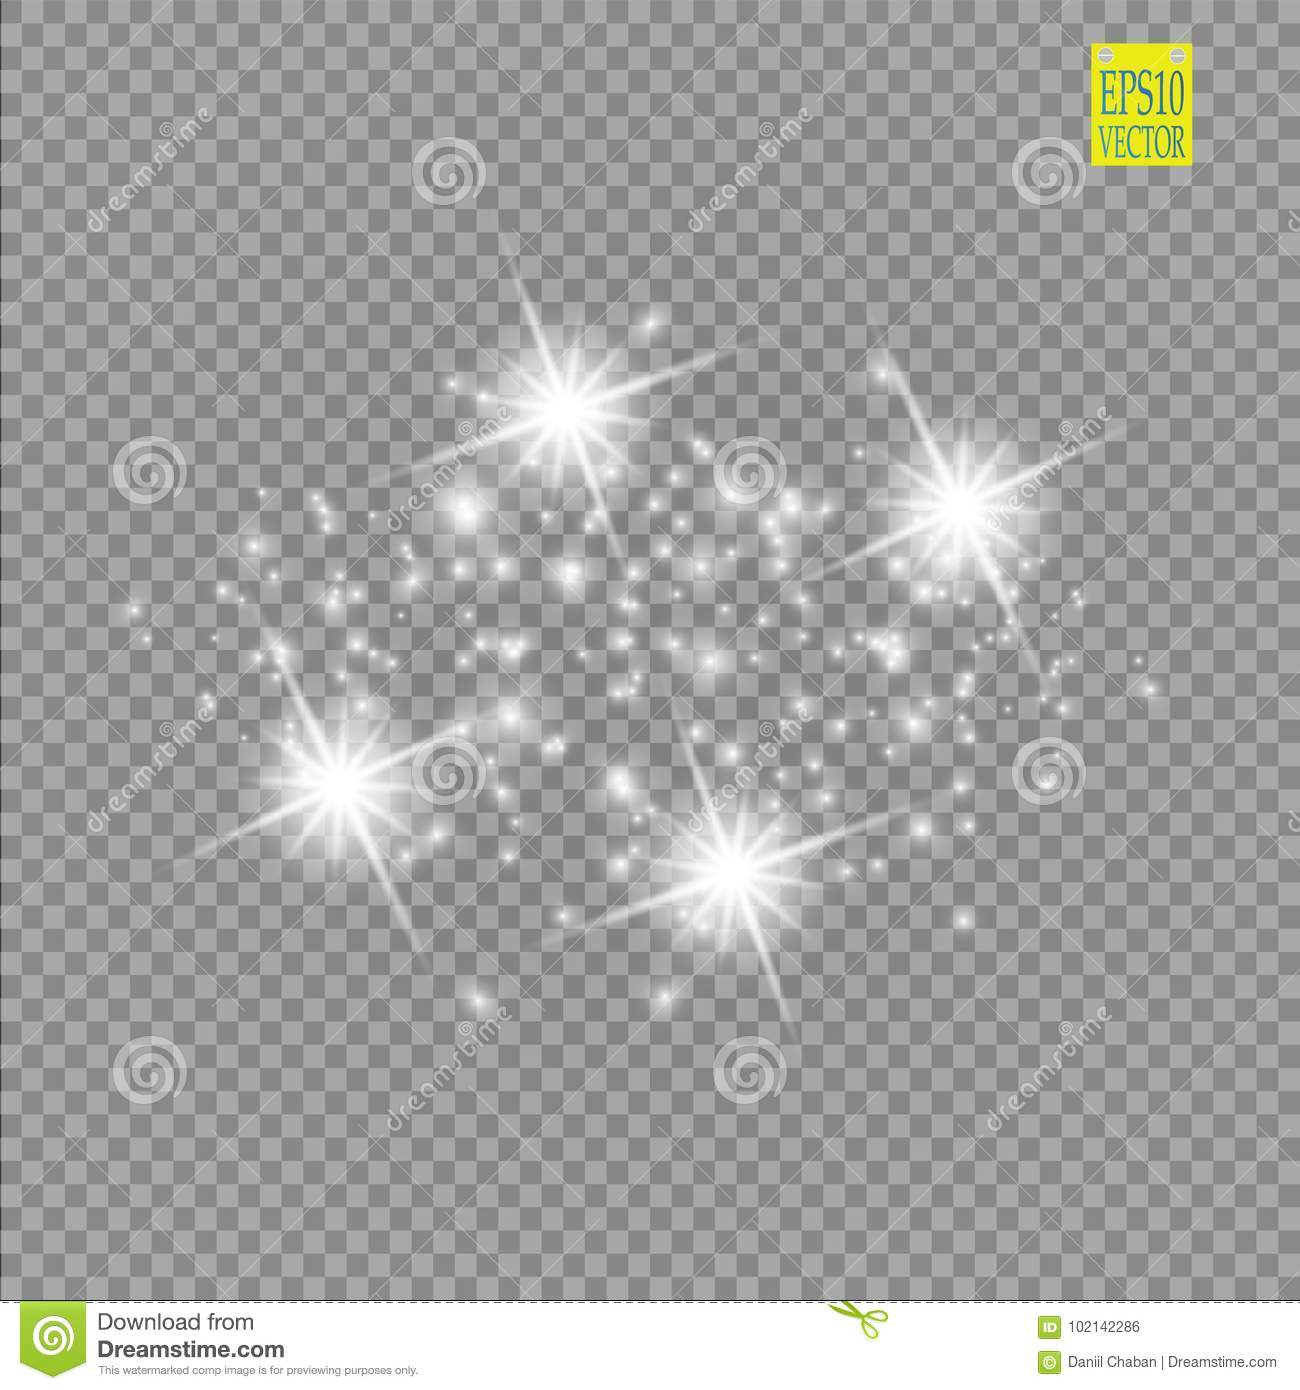 Set of white glowing lights effects isolated on transparent background. Sun flash with rays and spotlight. Glow light